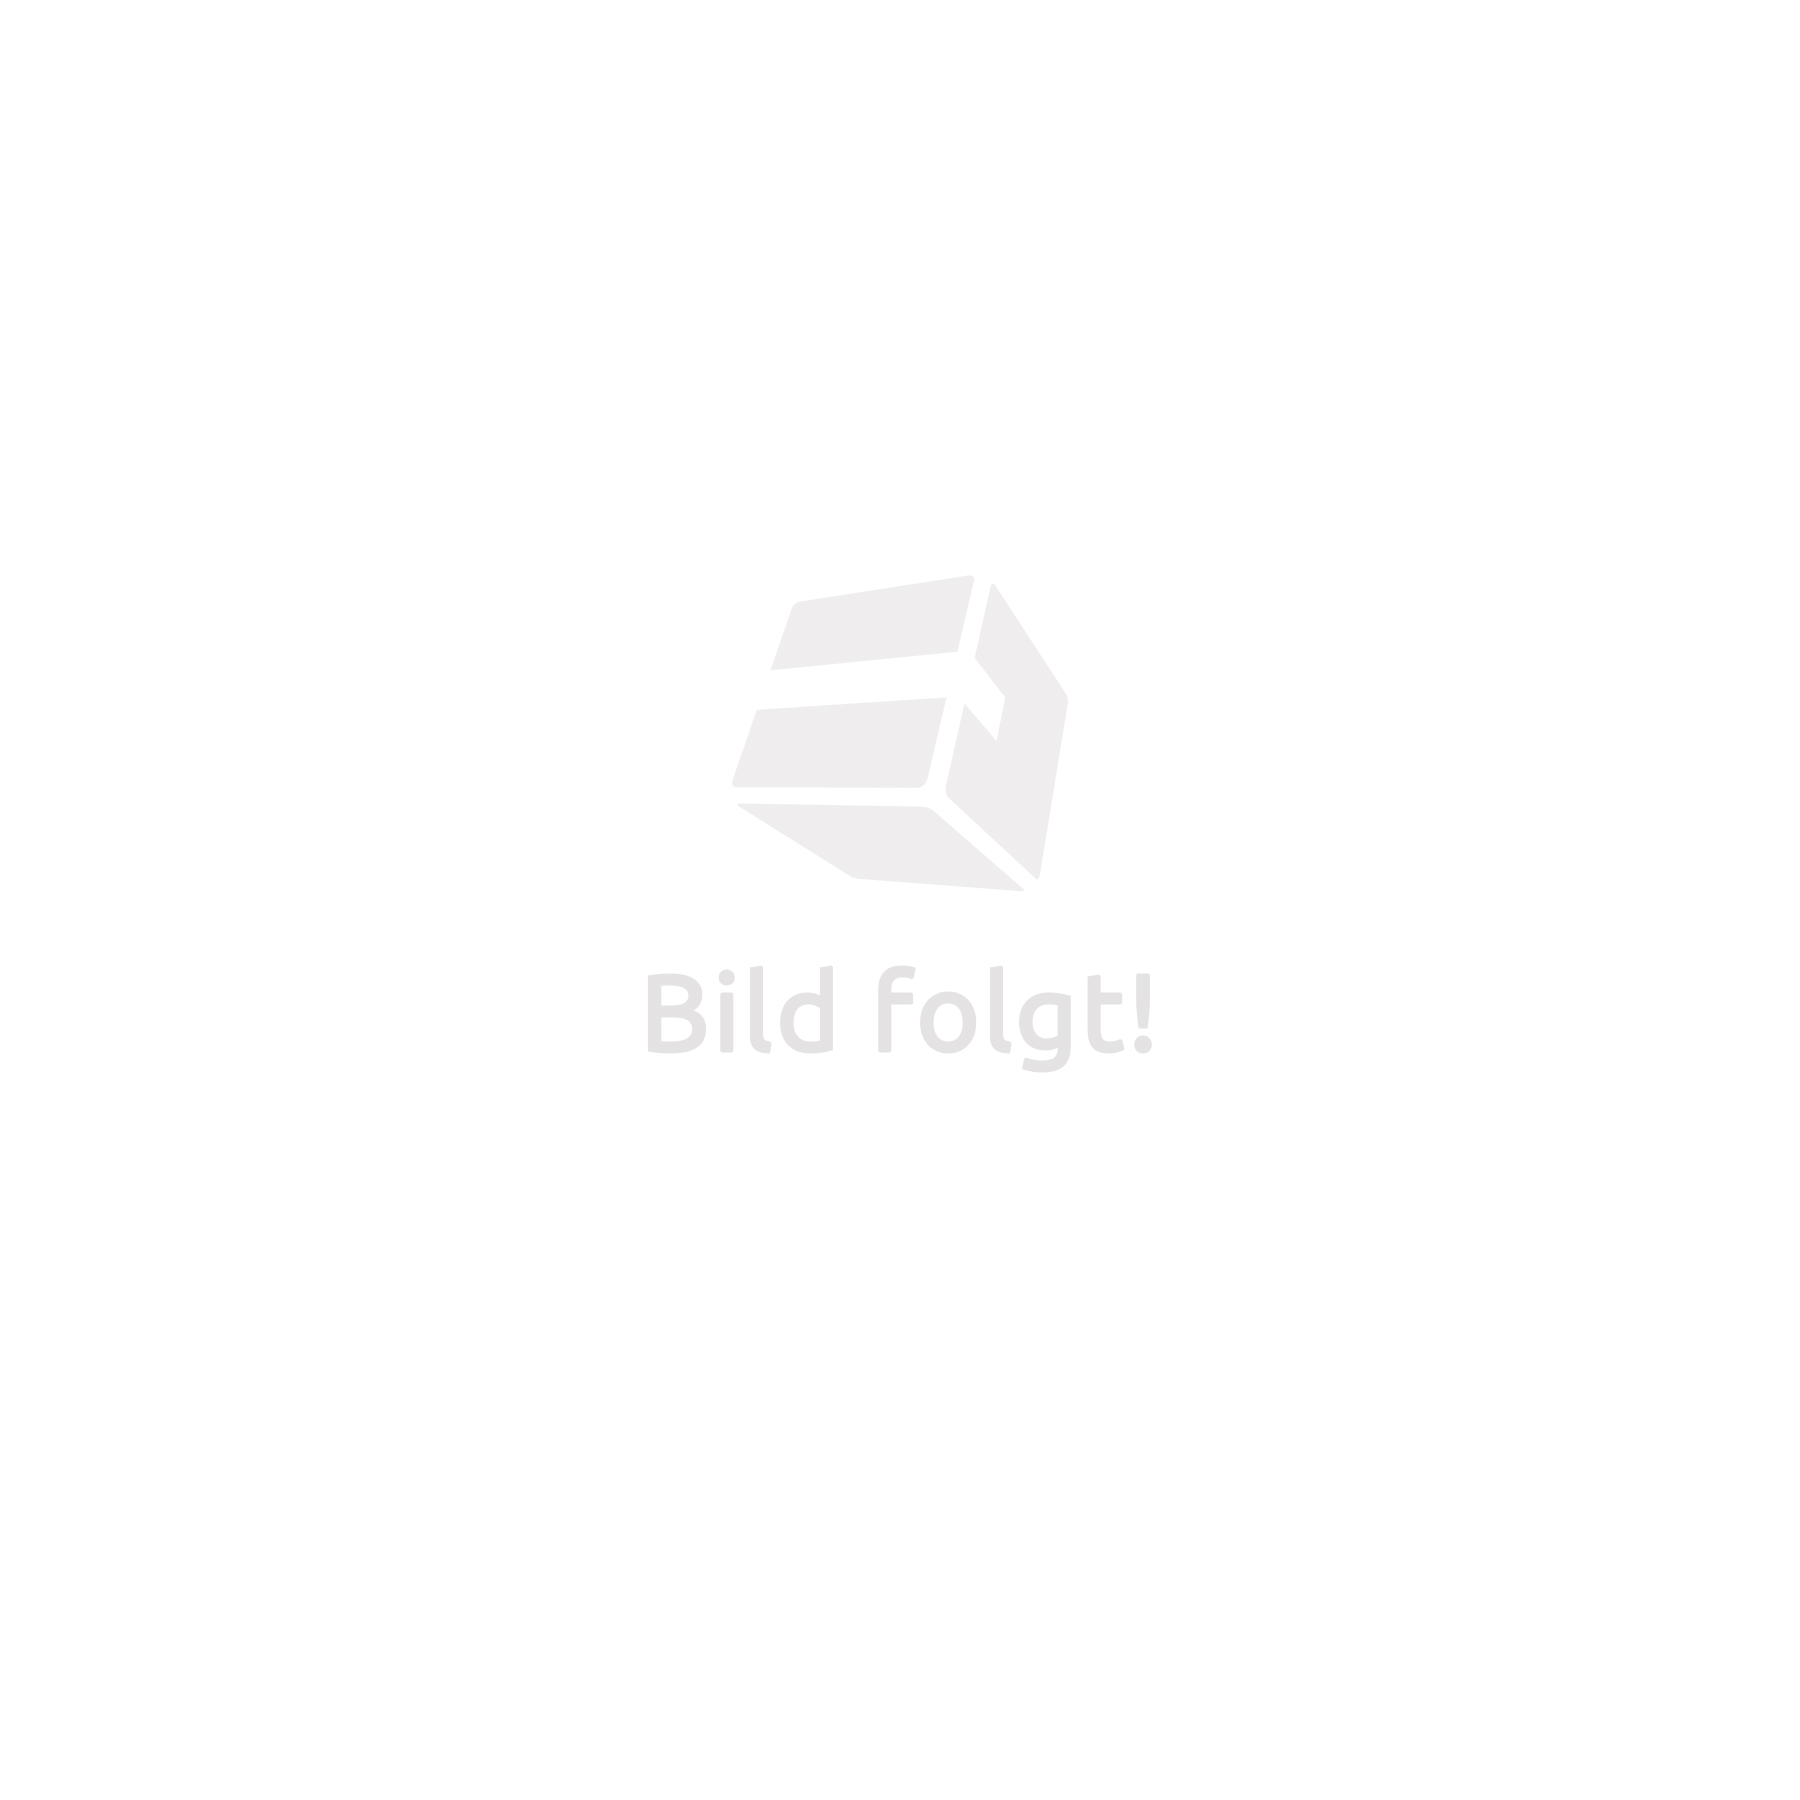 pavillon 3x6m grau partyzelt gartenzelt festzelt zelt gartenpavillon bierzelt ebay. Black Bedroom Furniture Sets. Home Design Ideas